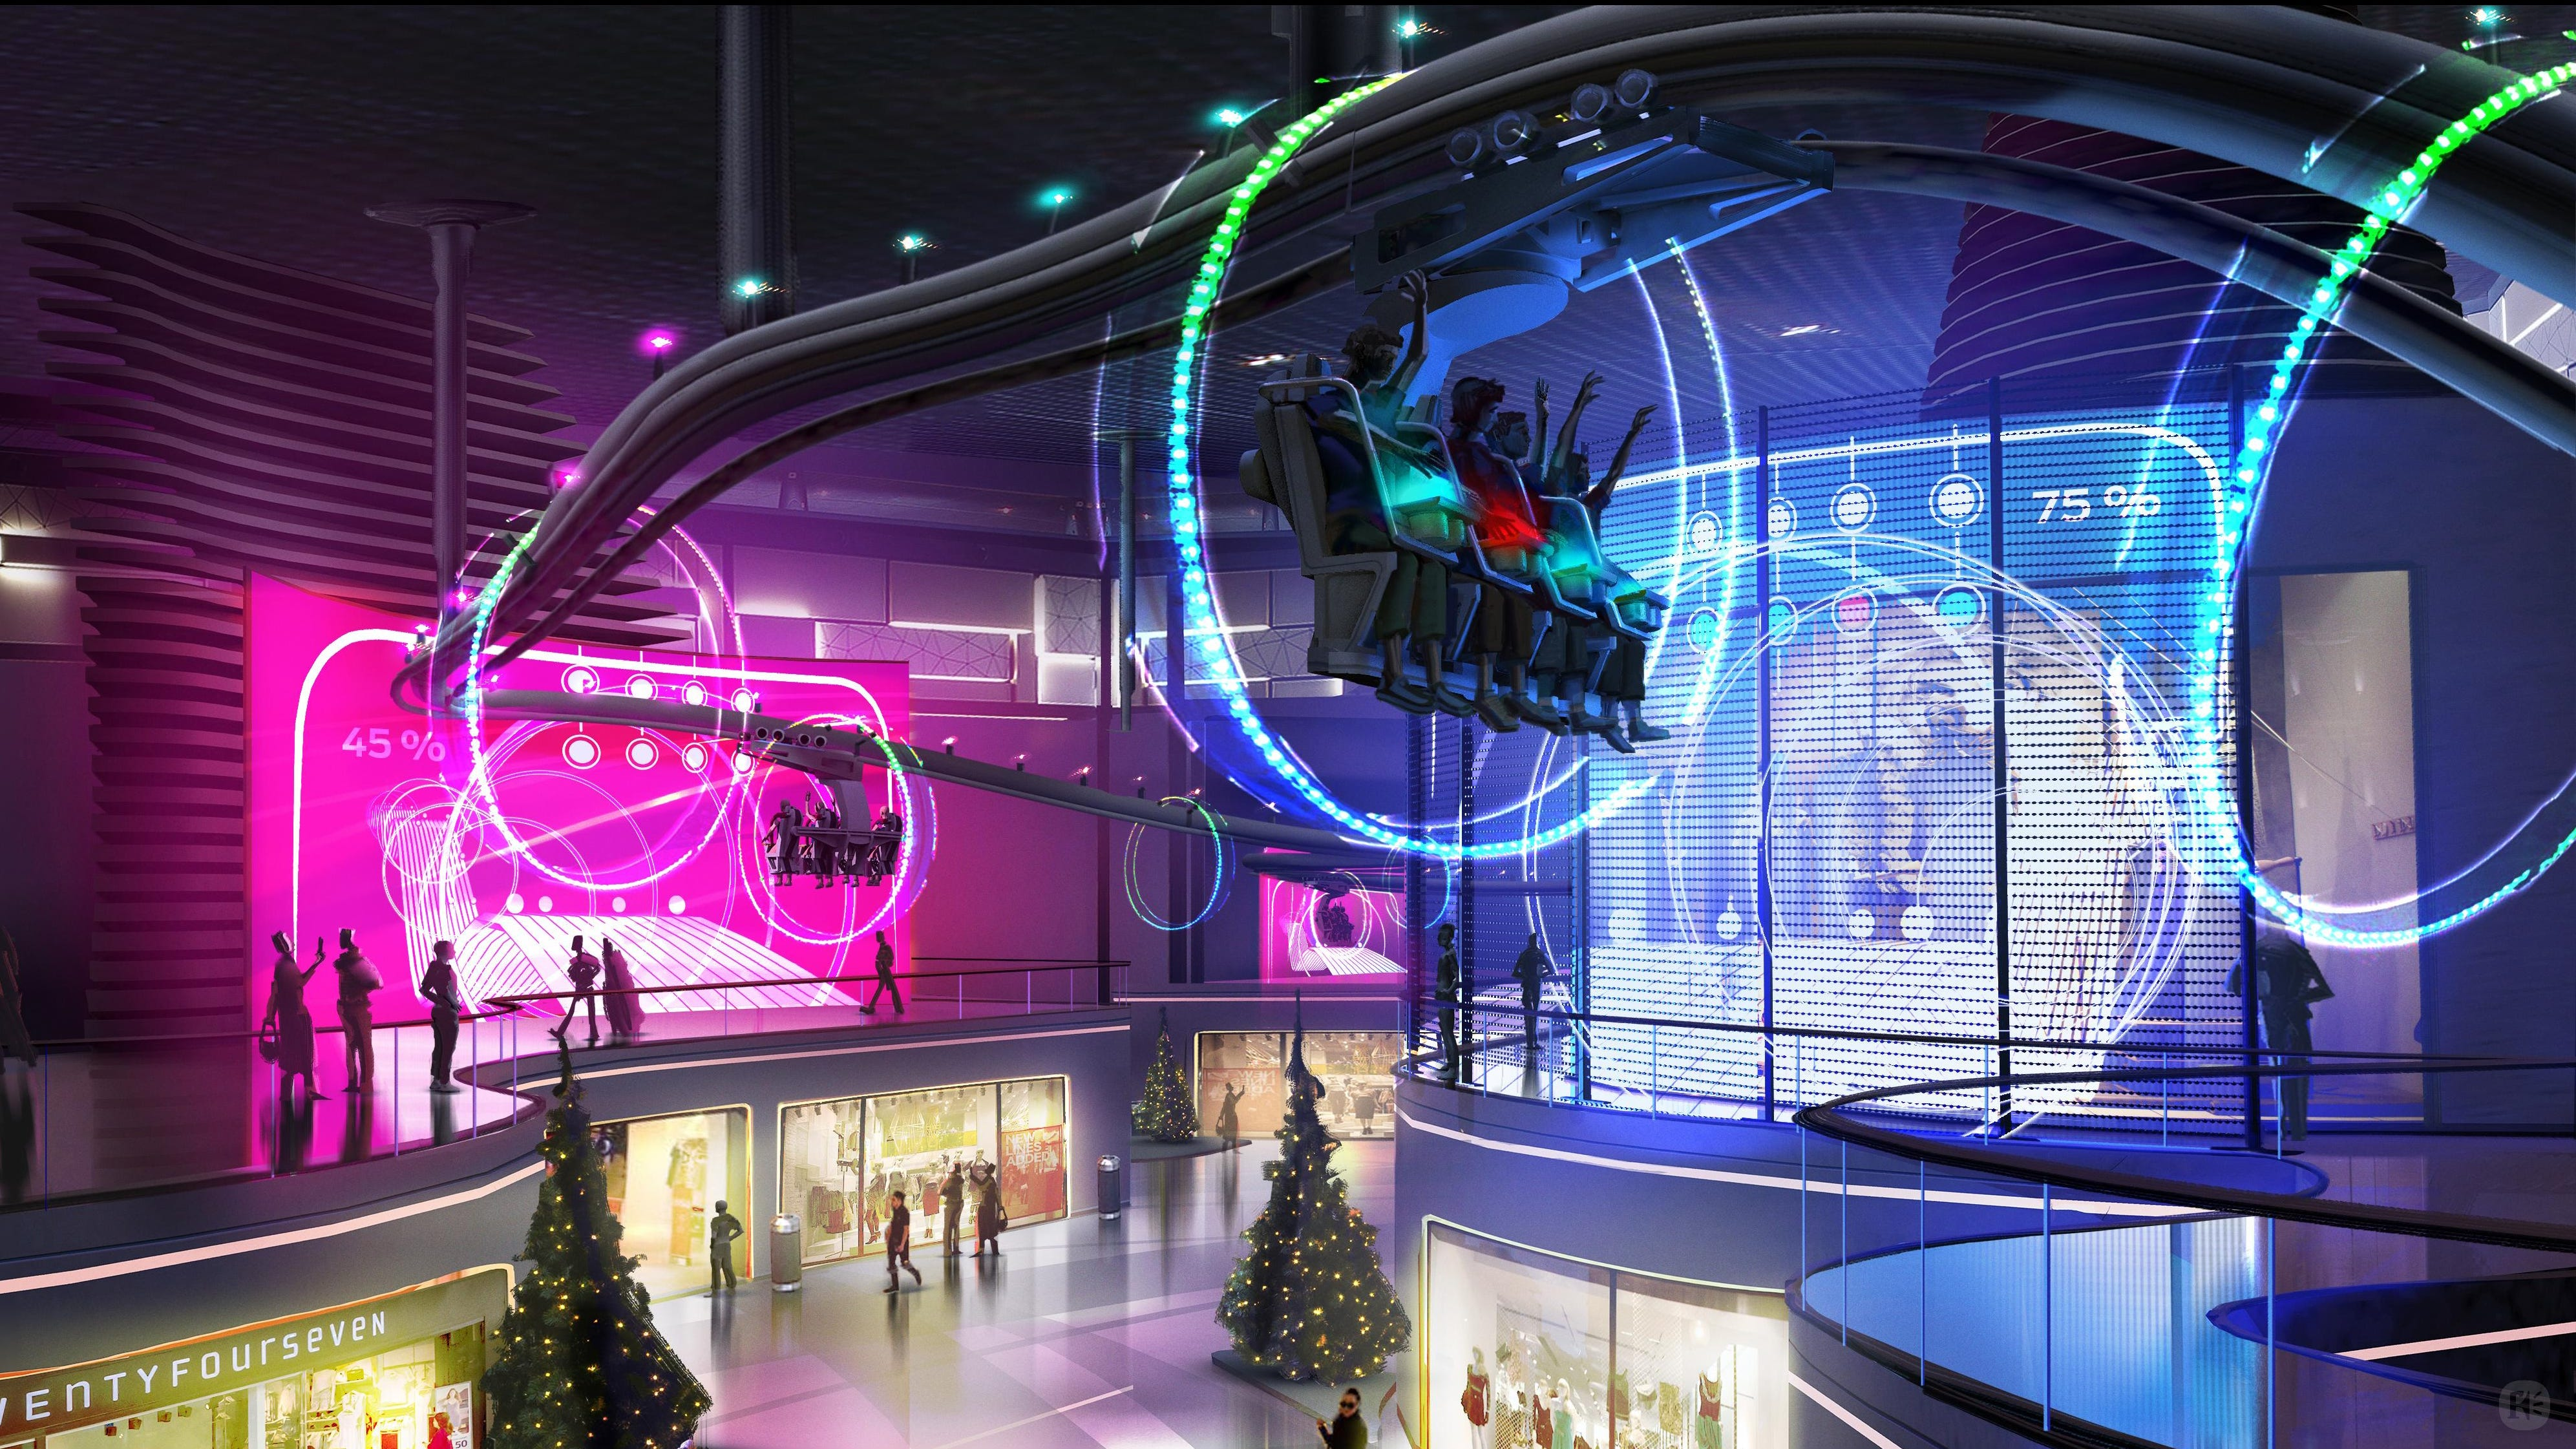 Cavu and Framestore revealed an interactive roller coaster train that could speed up, slow down or turn depending on the actions of the riders. With shopping malls losing anchor stores and other tenants, the ride developers envision their interactive coasters bringing renewed energy and purpose to underutilized, indoor retail spaces.